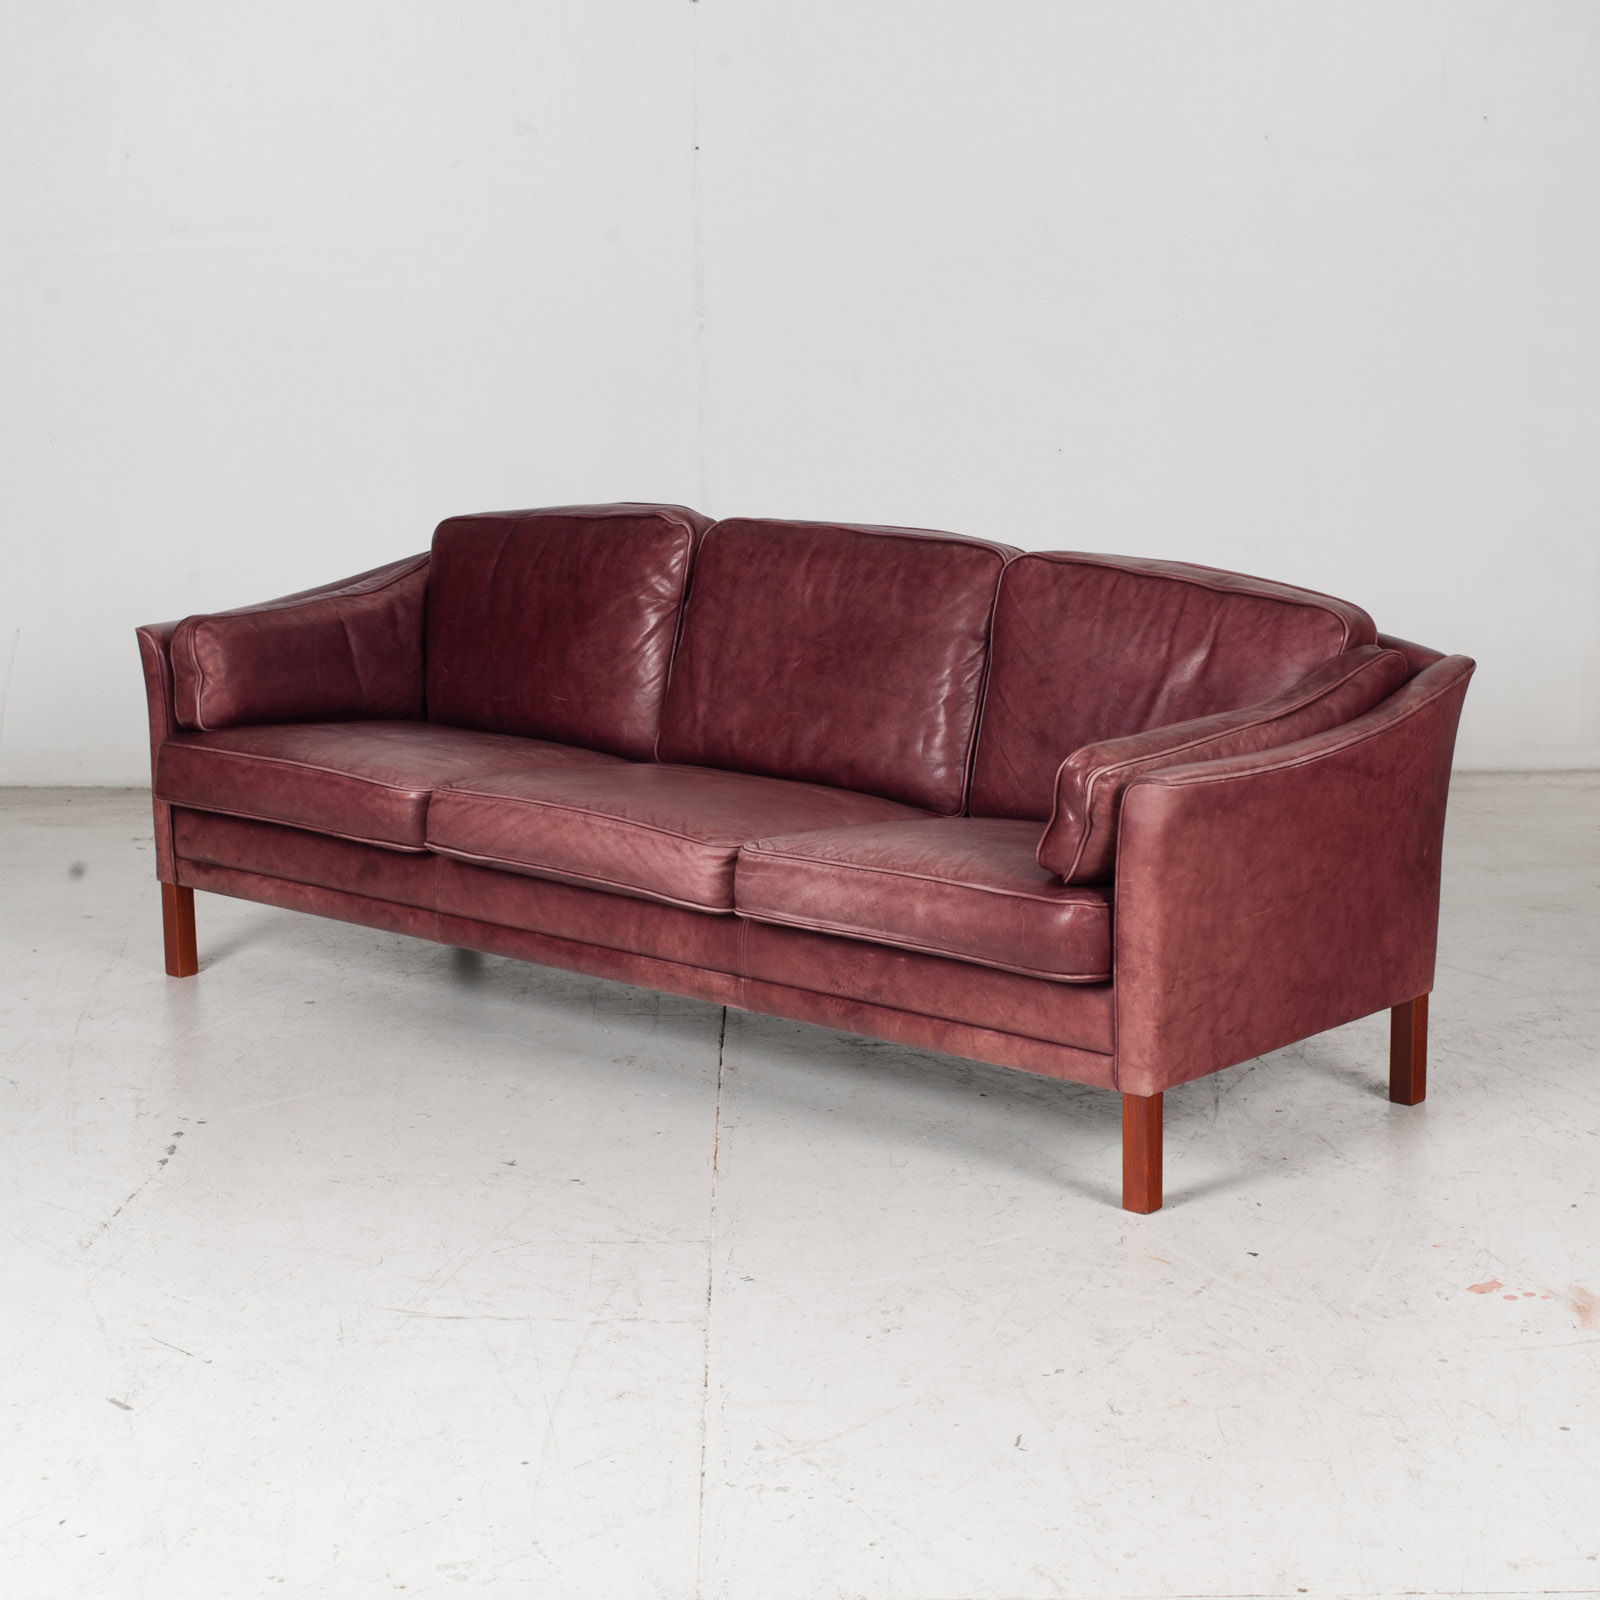 3 Seat Sofa By Mogens Hansen In Red Leather, 1960s, Denmark 4